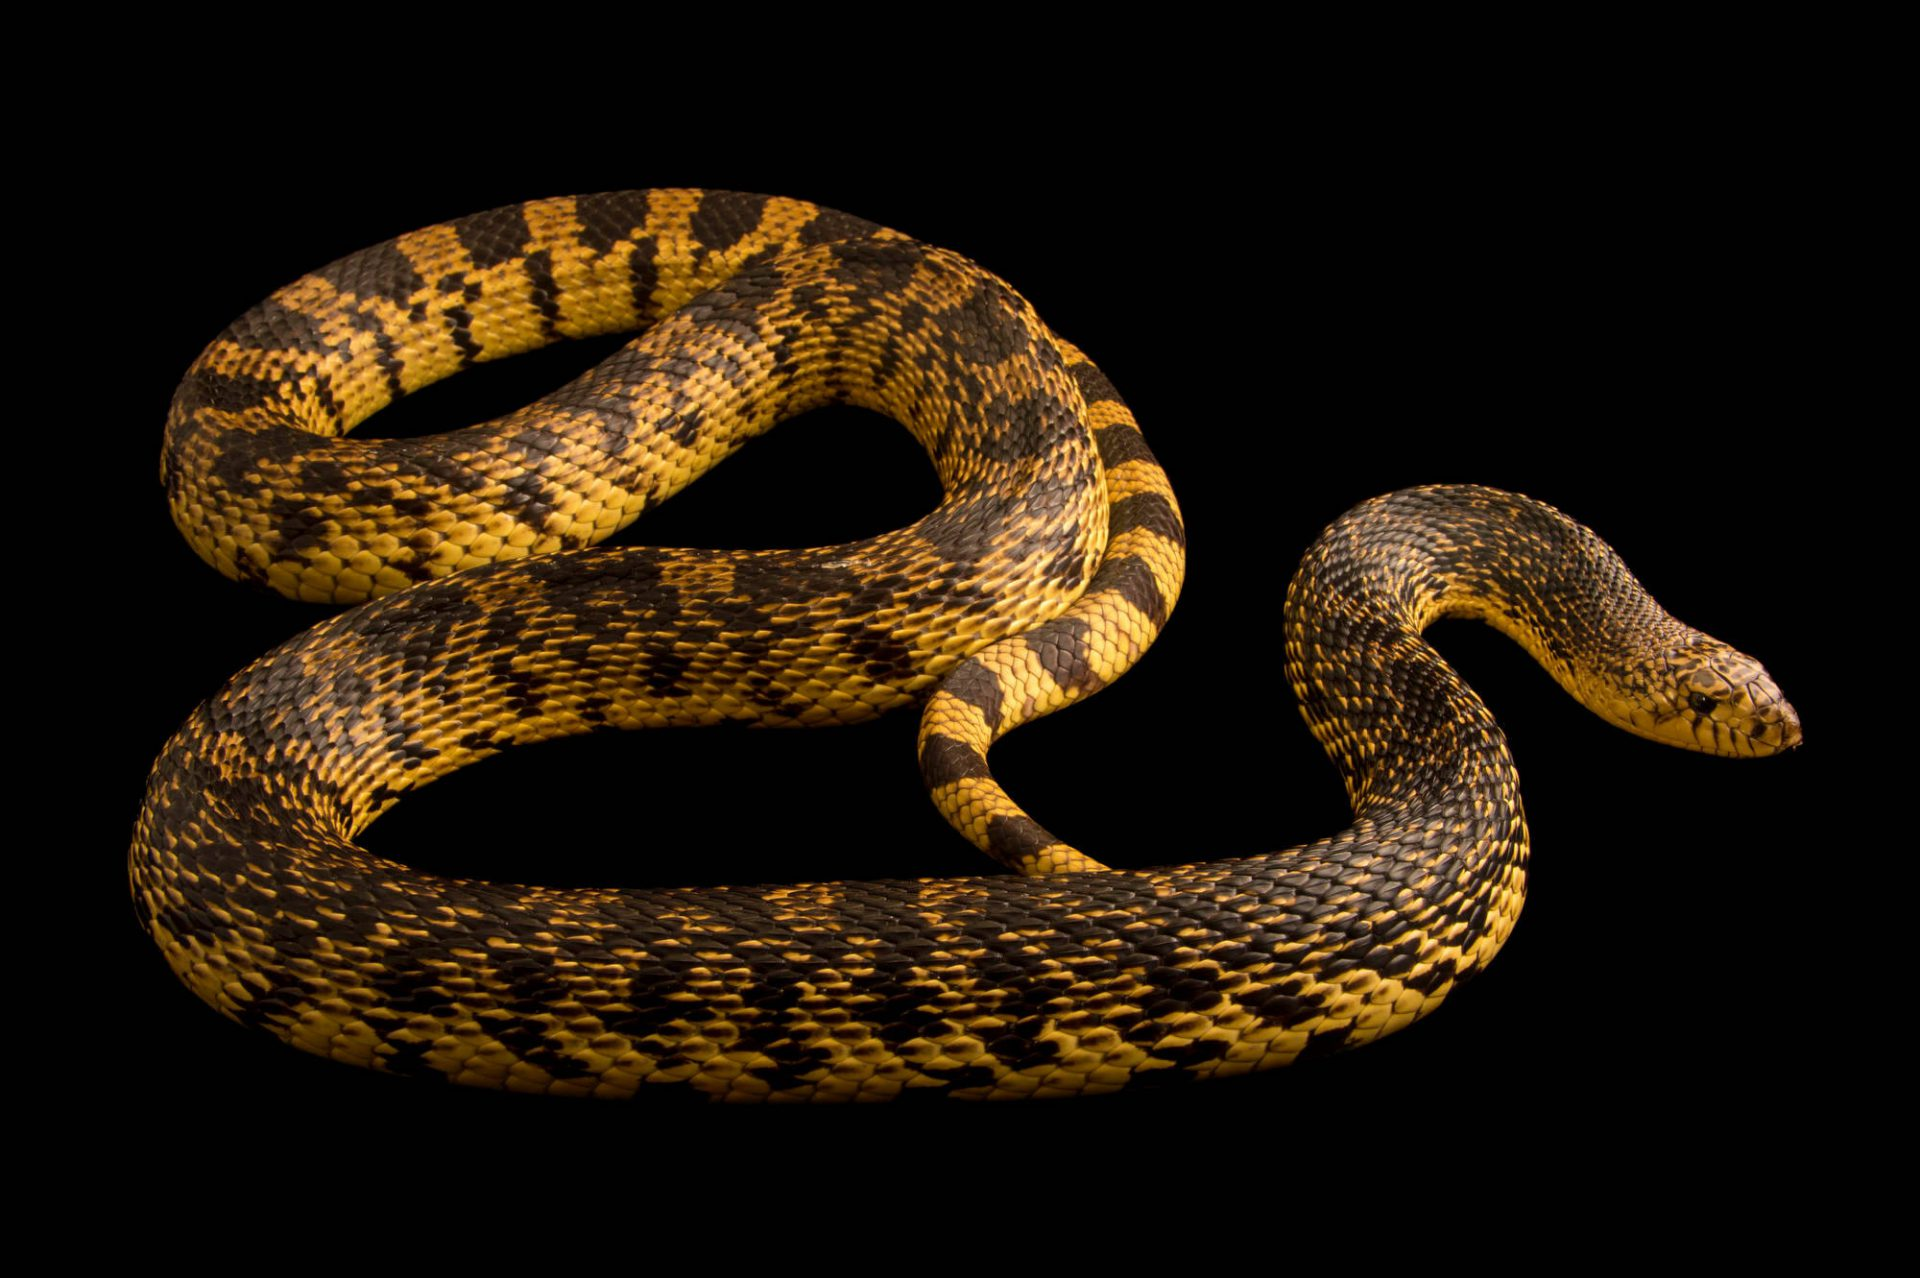 Picture of an endangered Louisiana pine snake (Pituophis ruthveni) at the Central Florida Zoo.